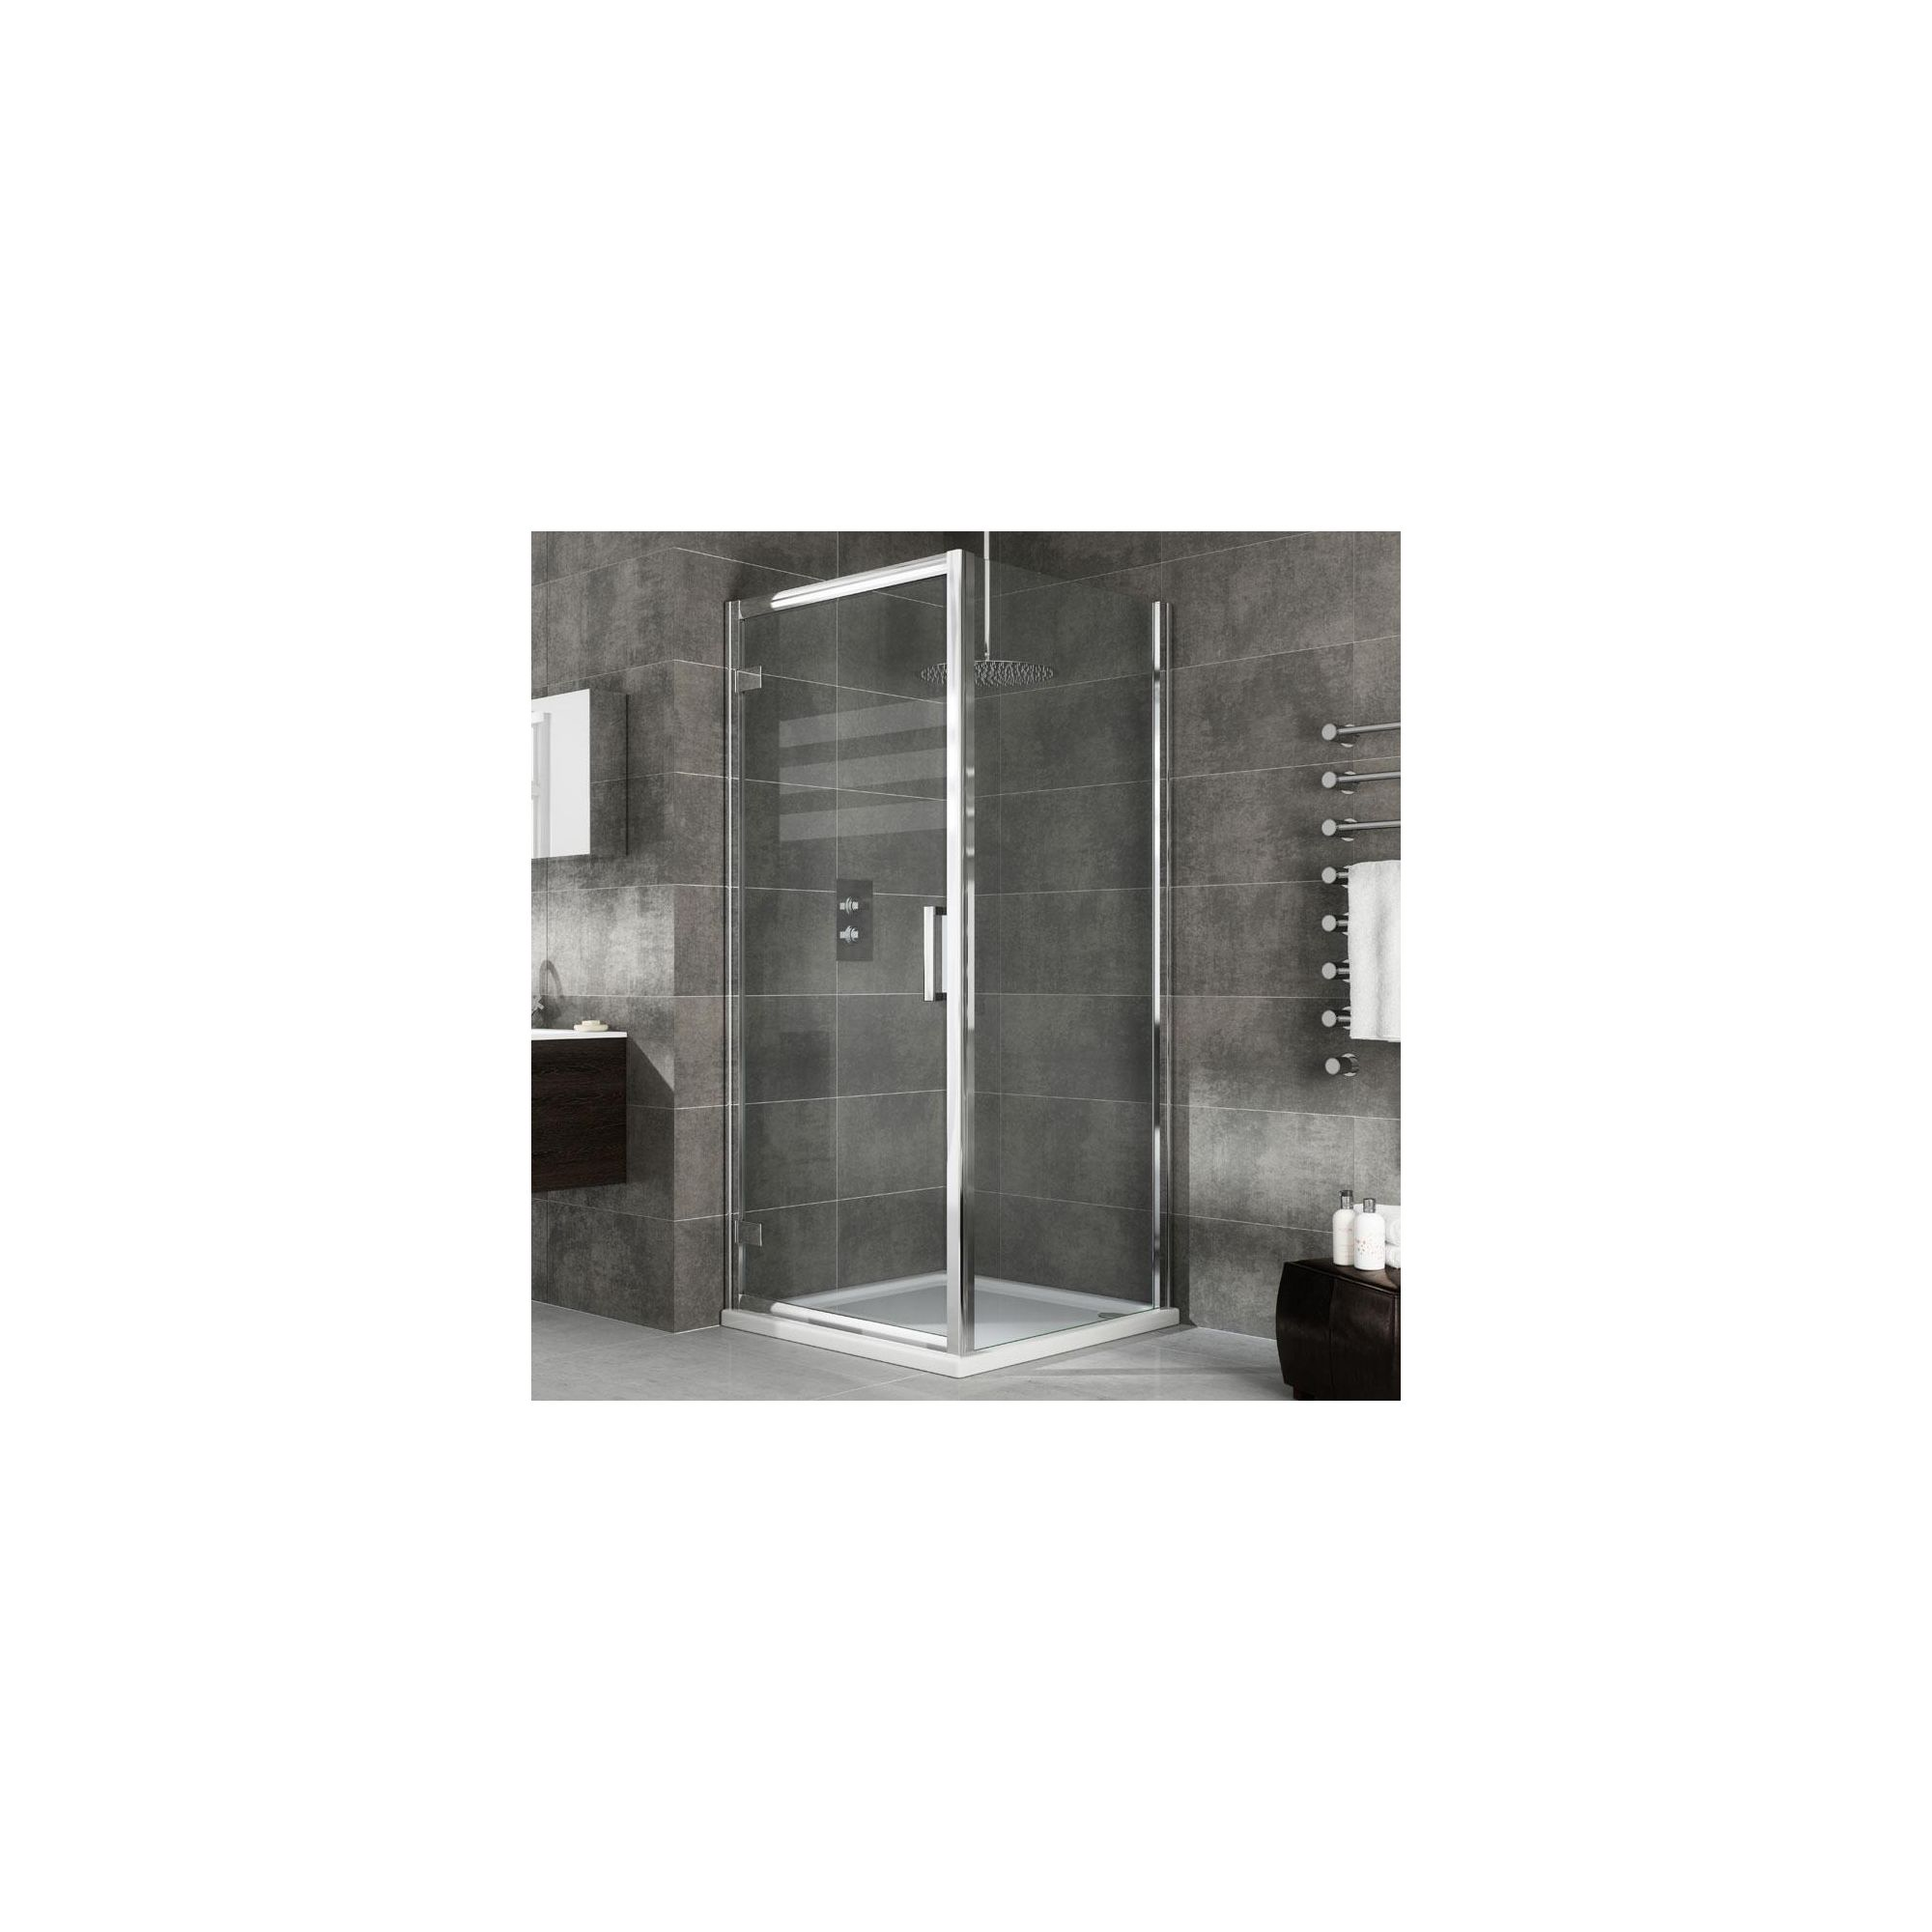 Elemis Eternity Hinged Door Shower Enclosure, 1000mm x 1000mm, 8mm Glass, Low Profile Tray at Tesco Direct